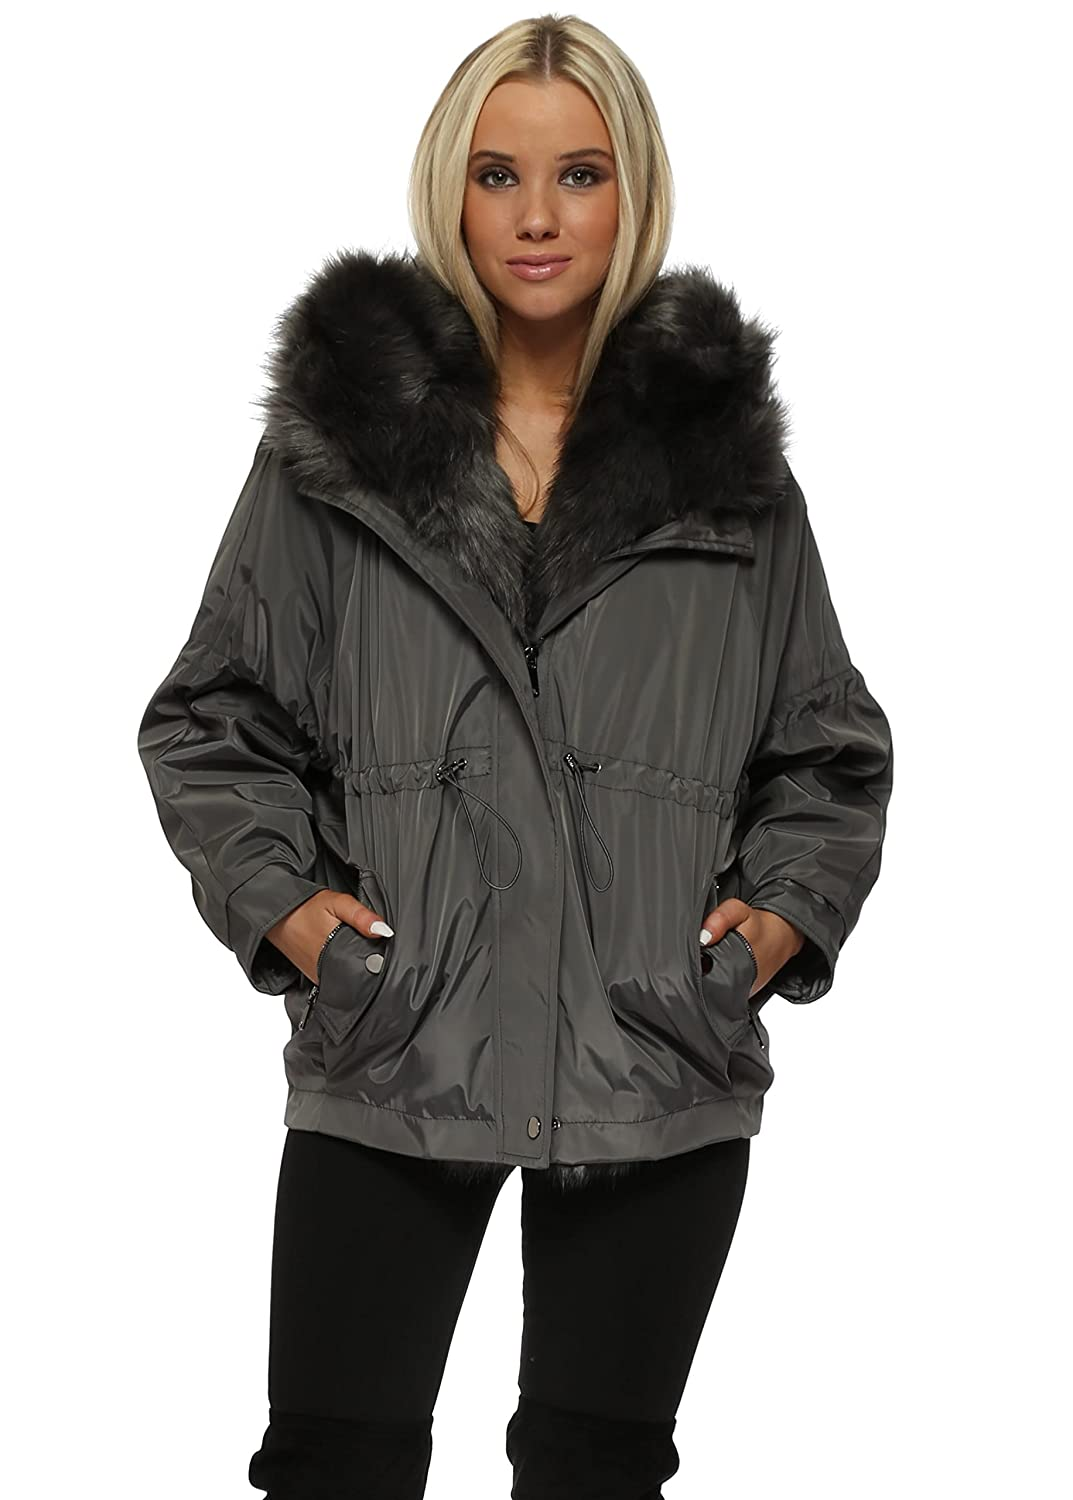 ce7f8a7d5b48 Drole de Copine Grey Hooded Puffer Jacket with Detachable Faux Fur M/L Grey:  Amazon.co.uk: Clothing